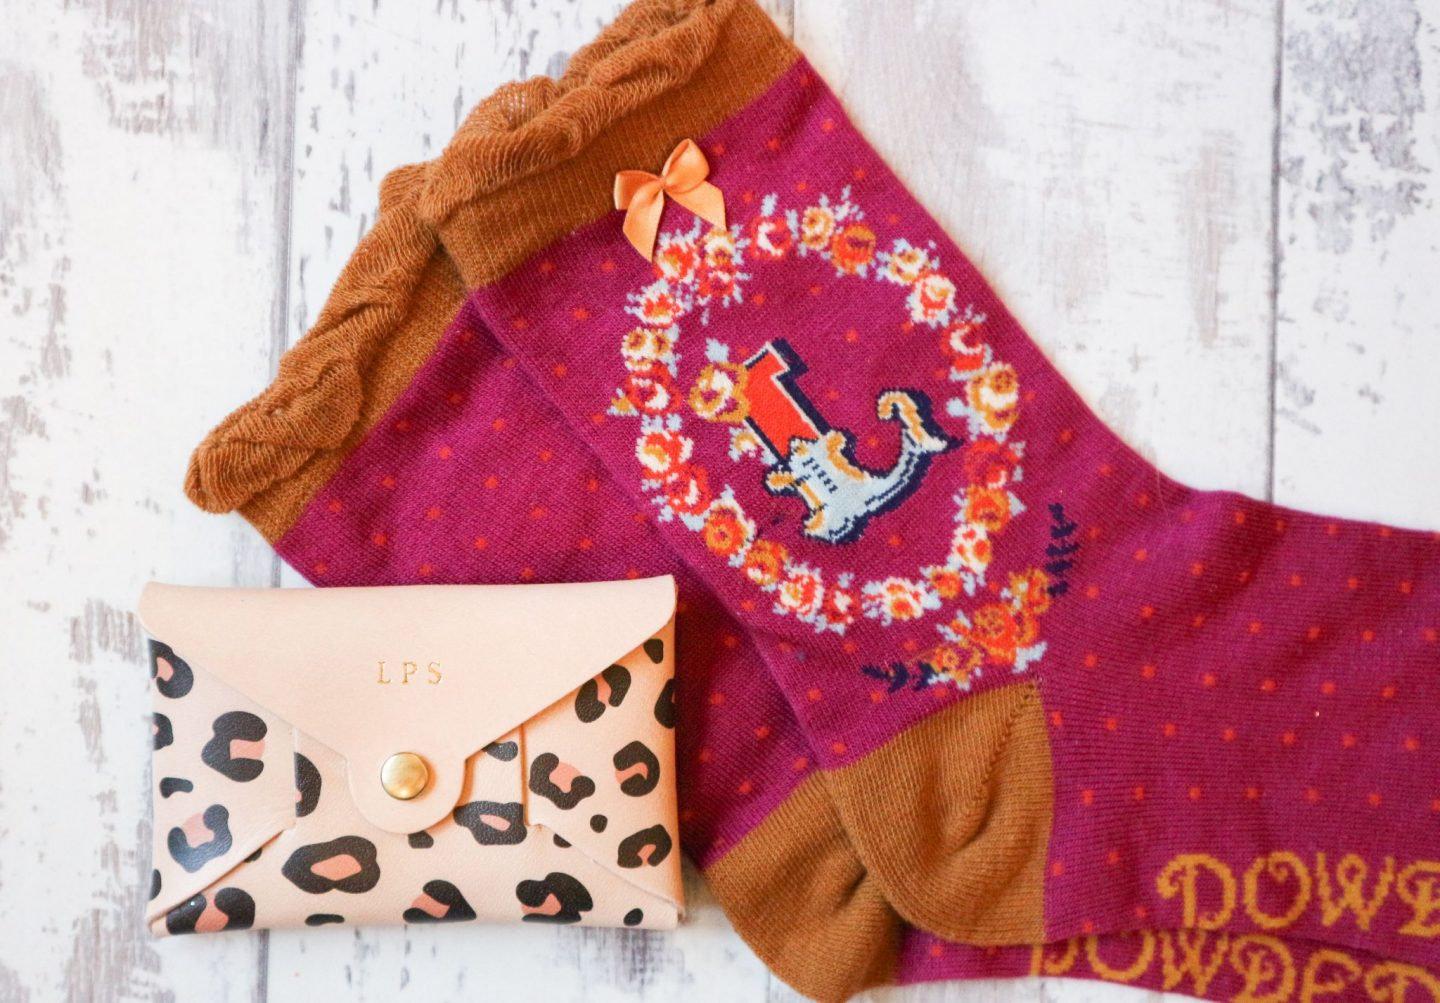 monogrammed purse and socks